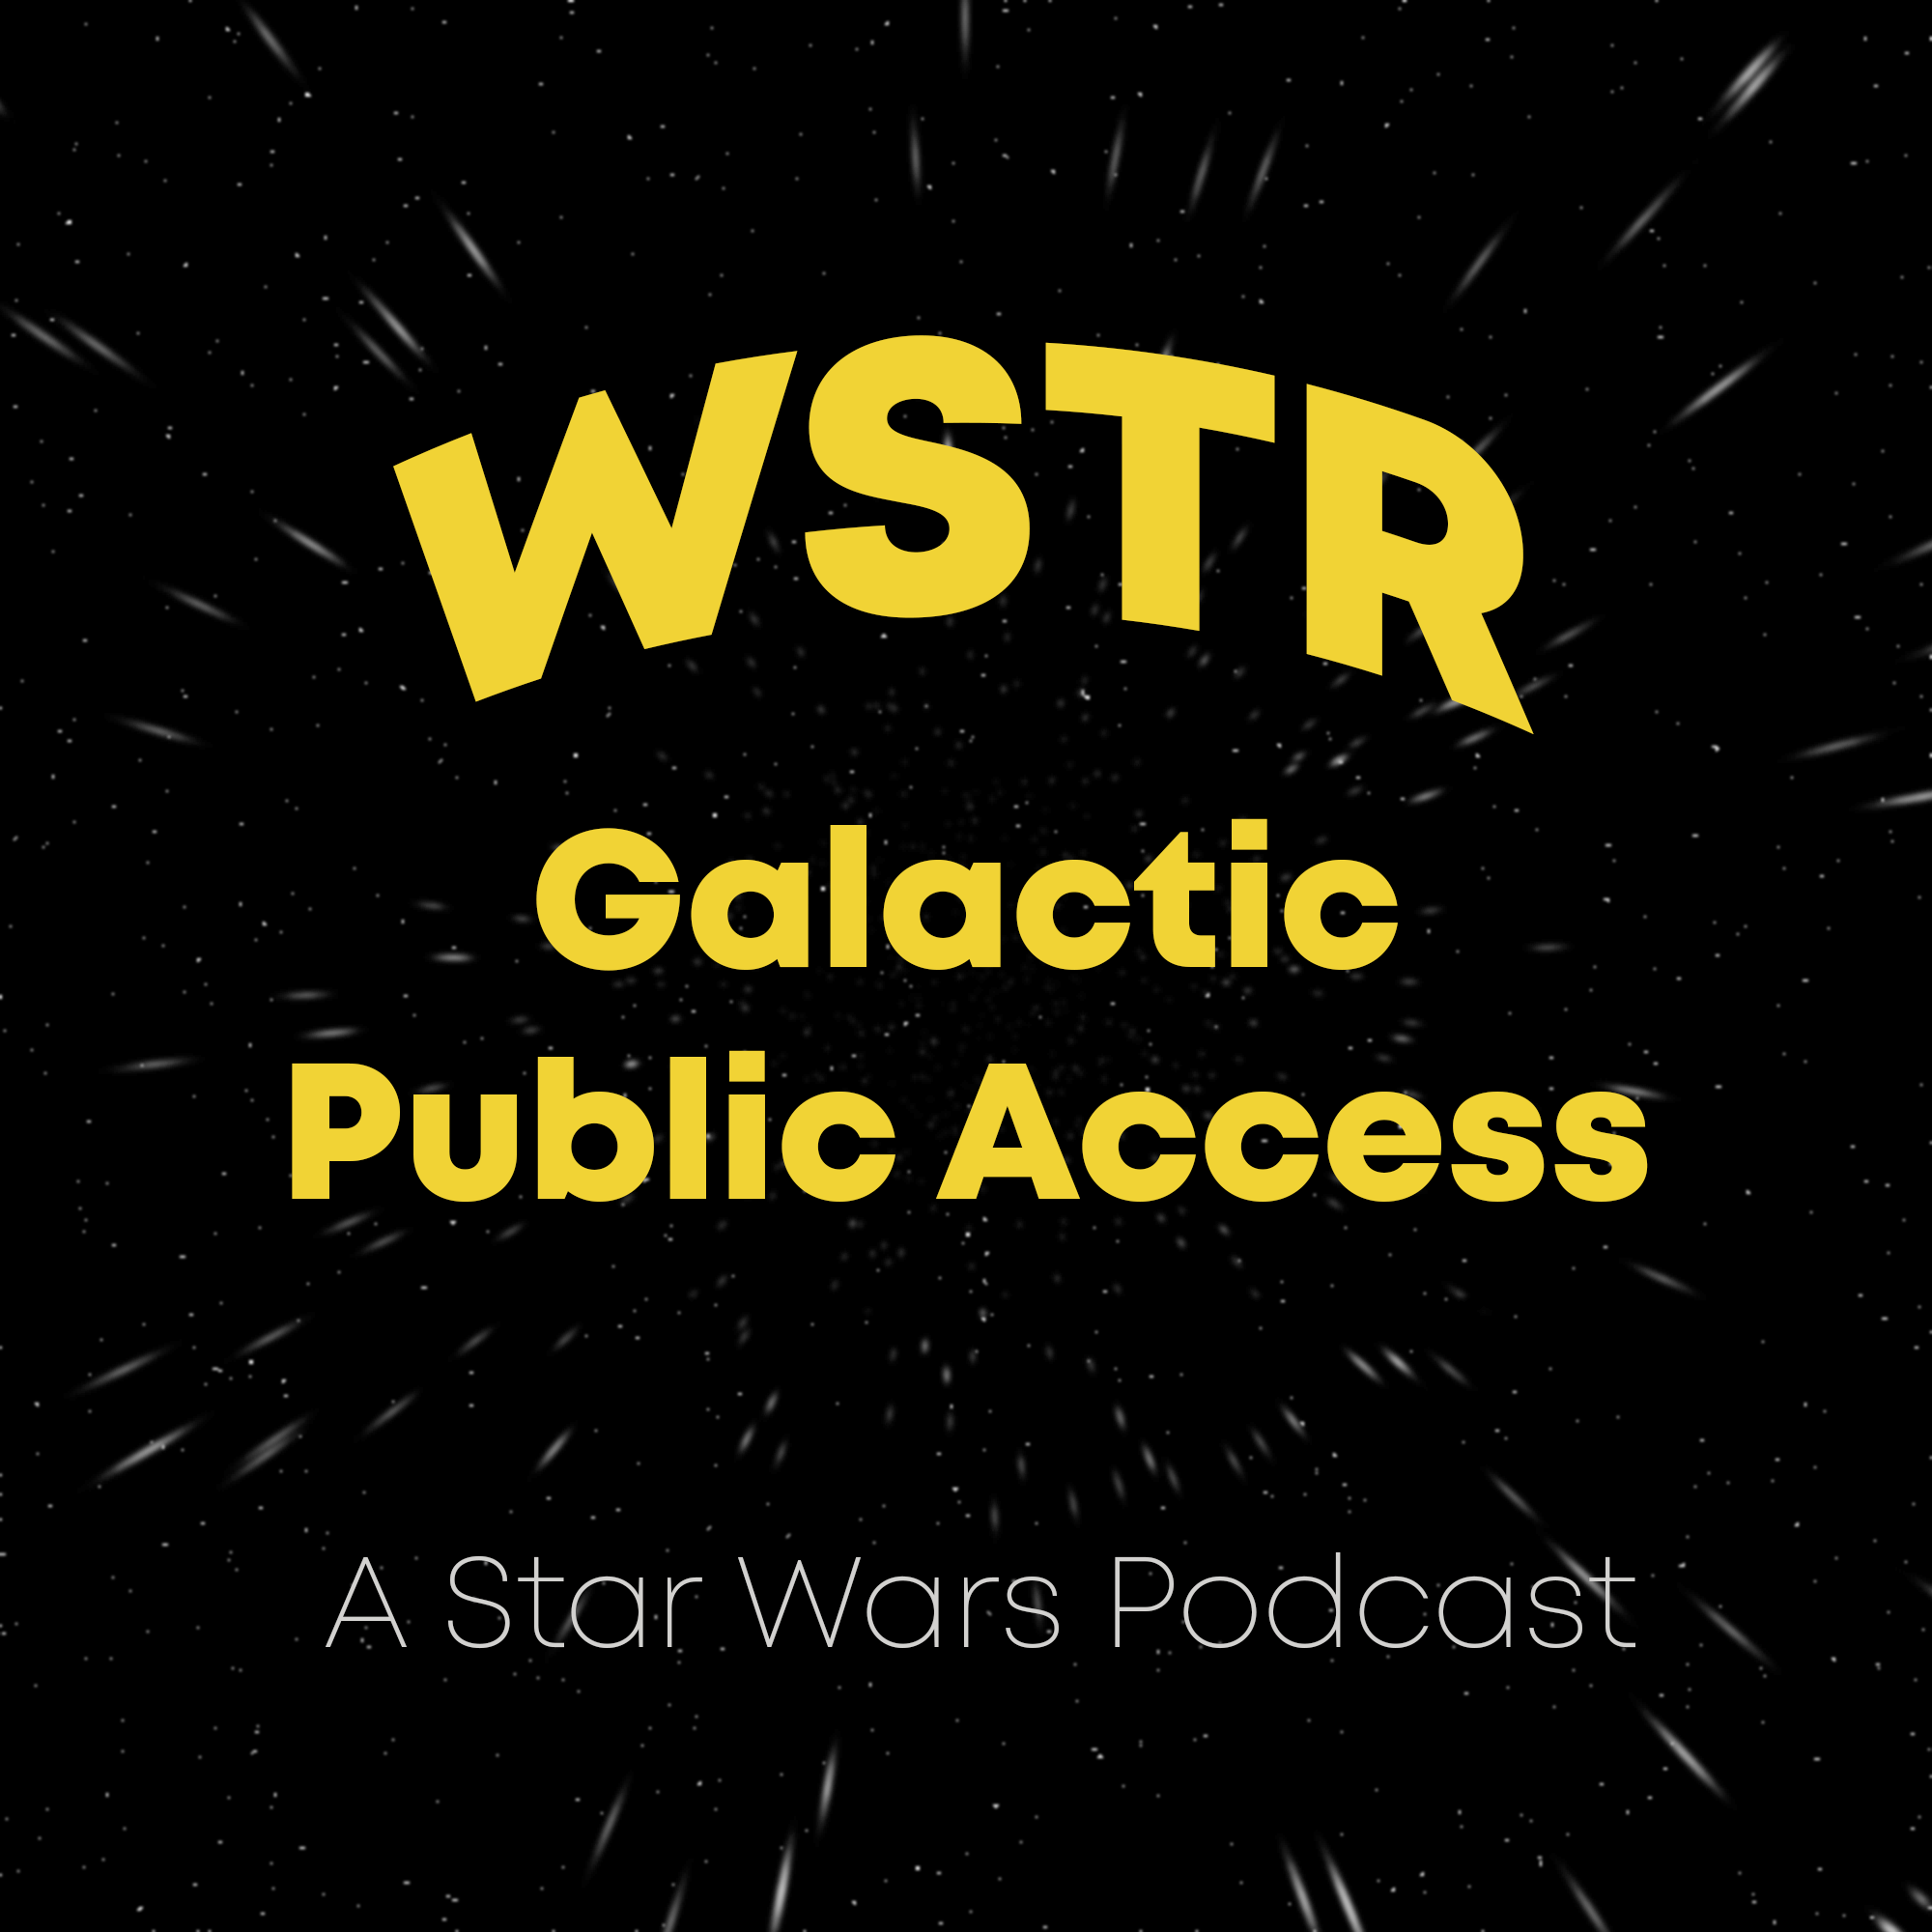 WSTR Galactic Public Access - A Star Wars Podcast show art